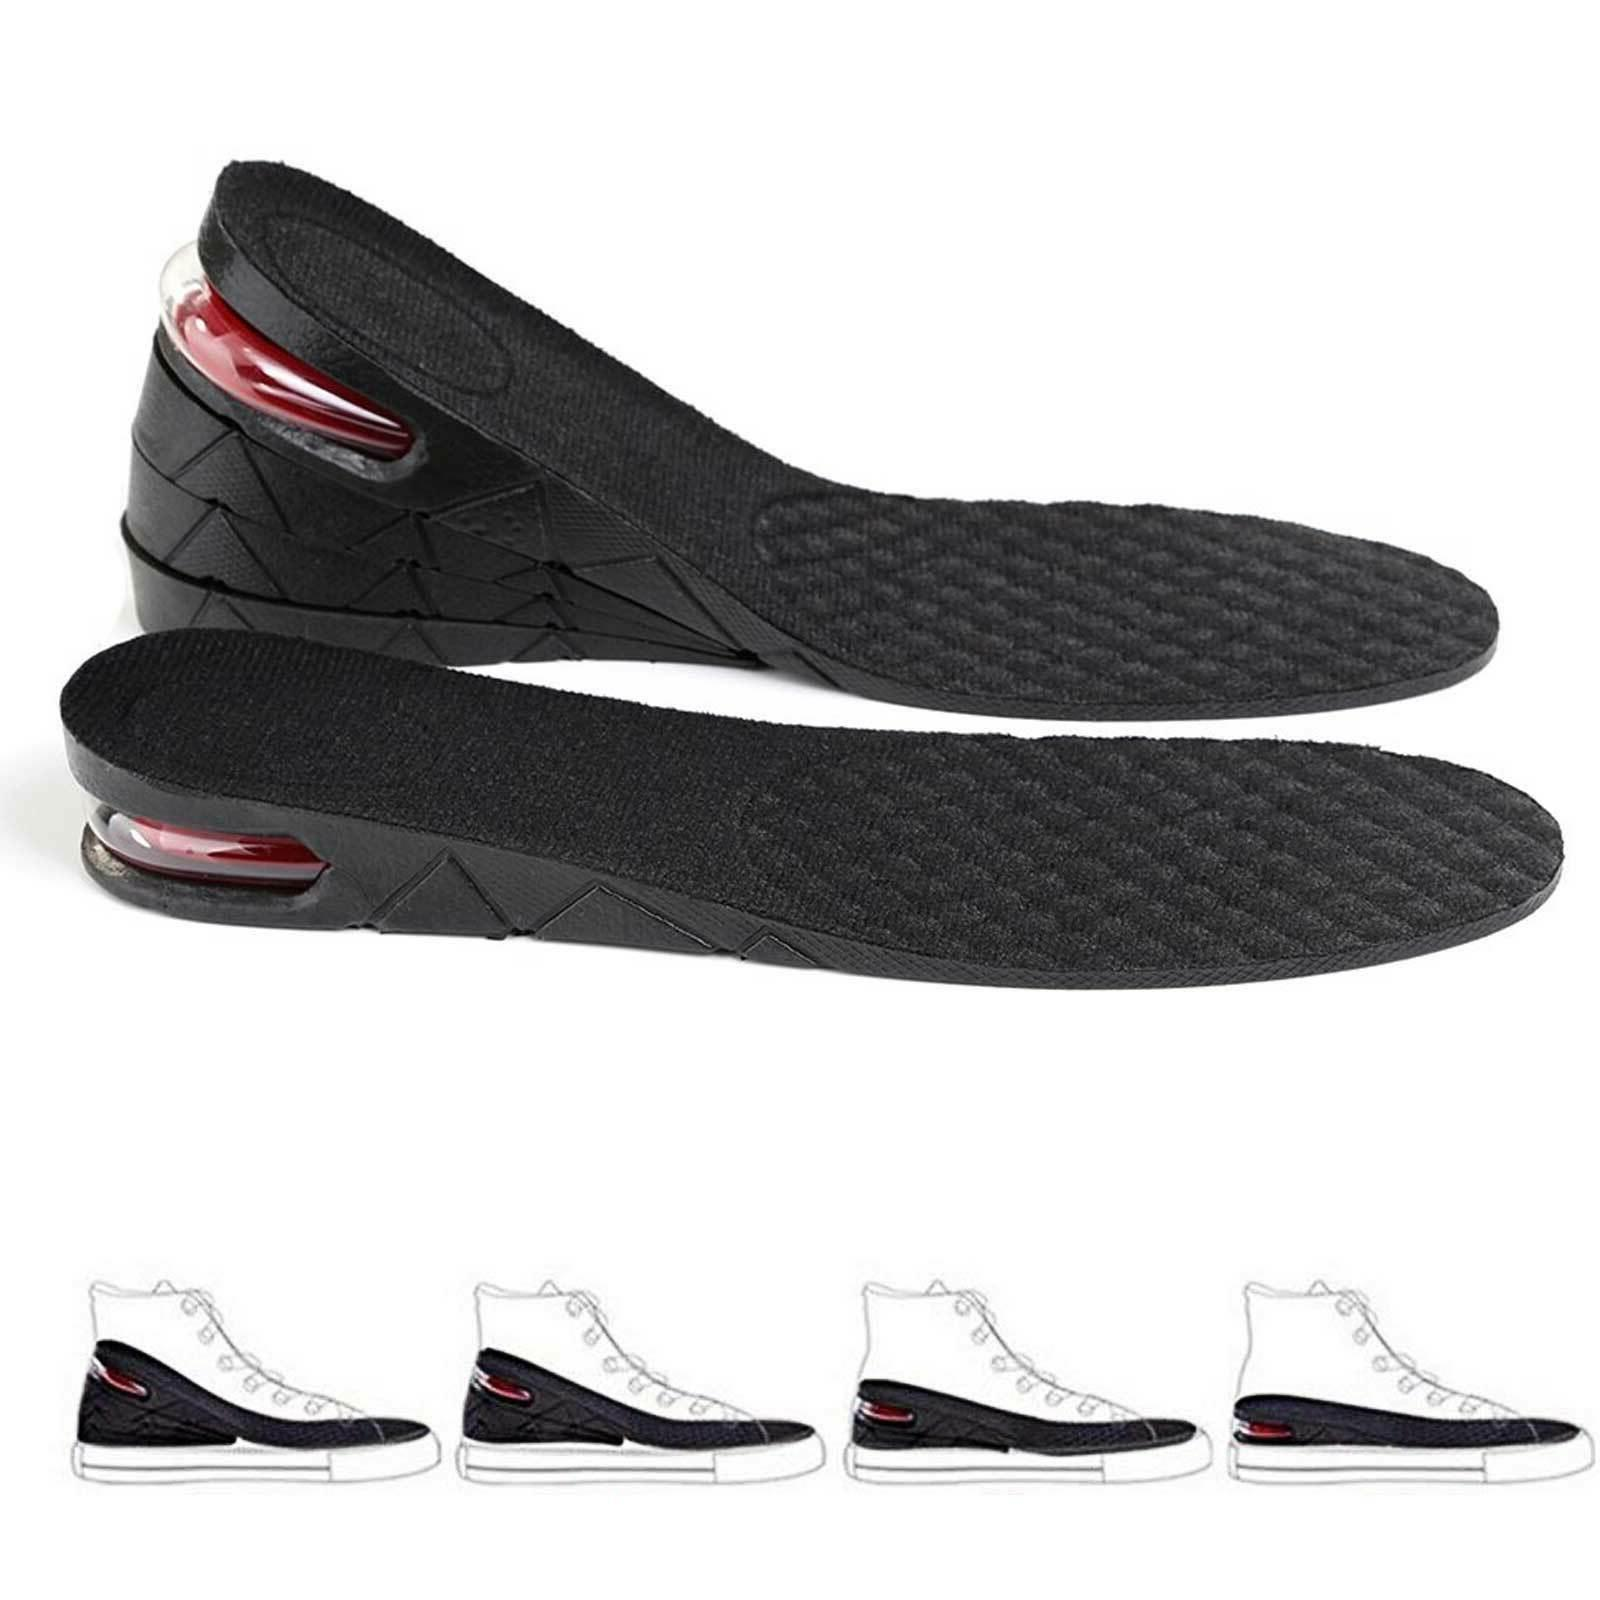 3 5 7cm men air cushion heel